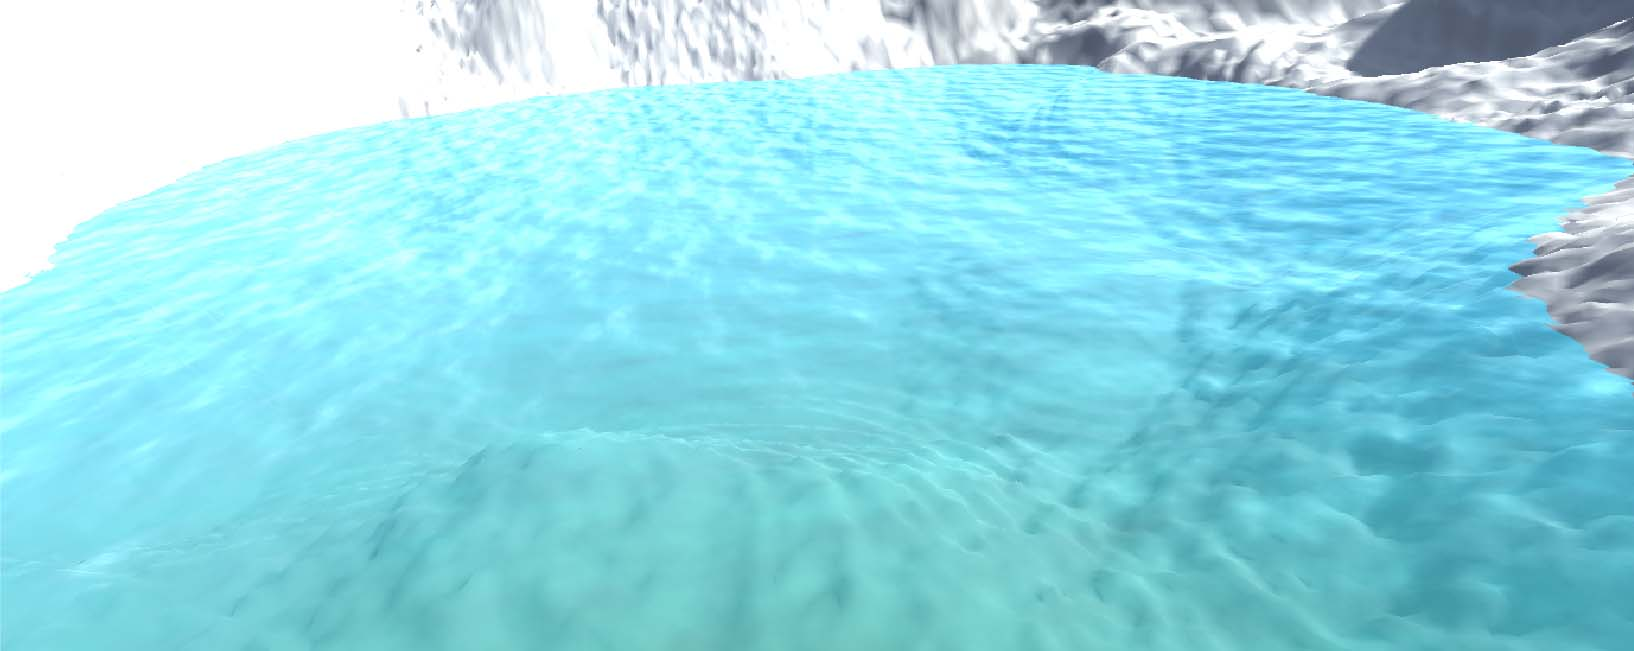 How to move water up and down by Shaderforge | STYLY